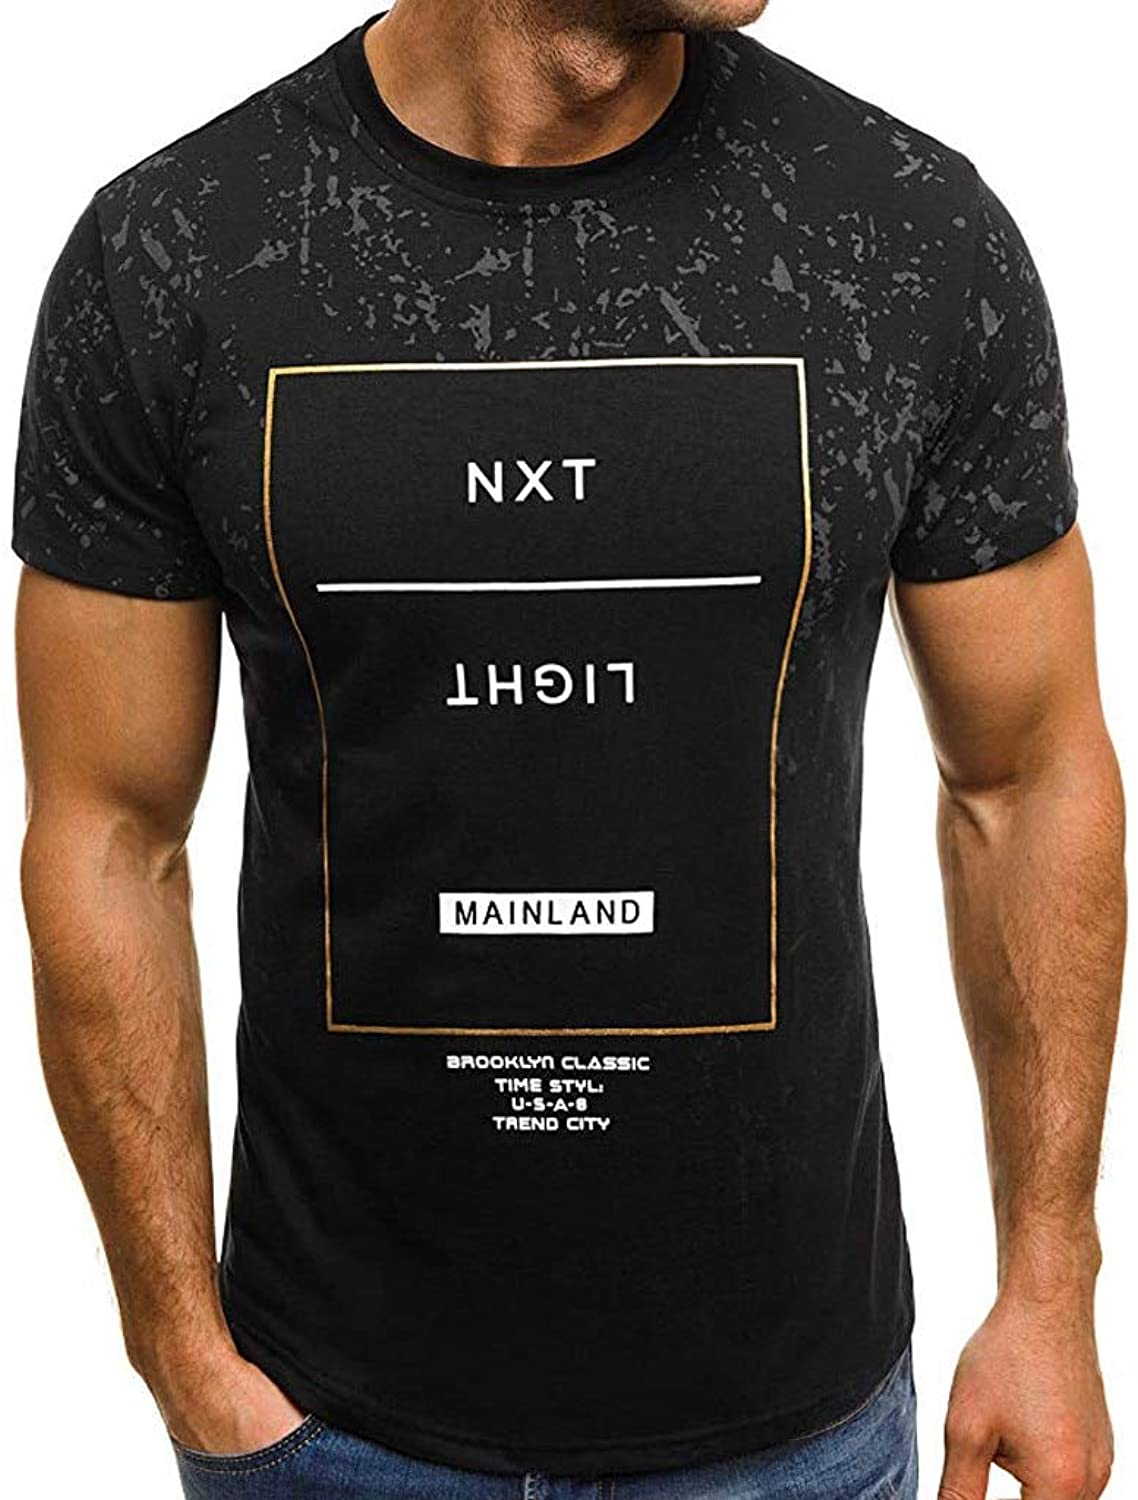 DUXIGJCD Men's Summer New Letter Printed Round Neck Sport Short Sleeves Fashion Casual Personality Blouse Top